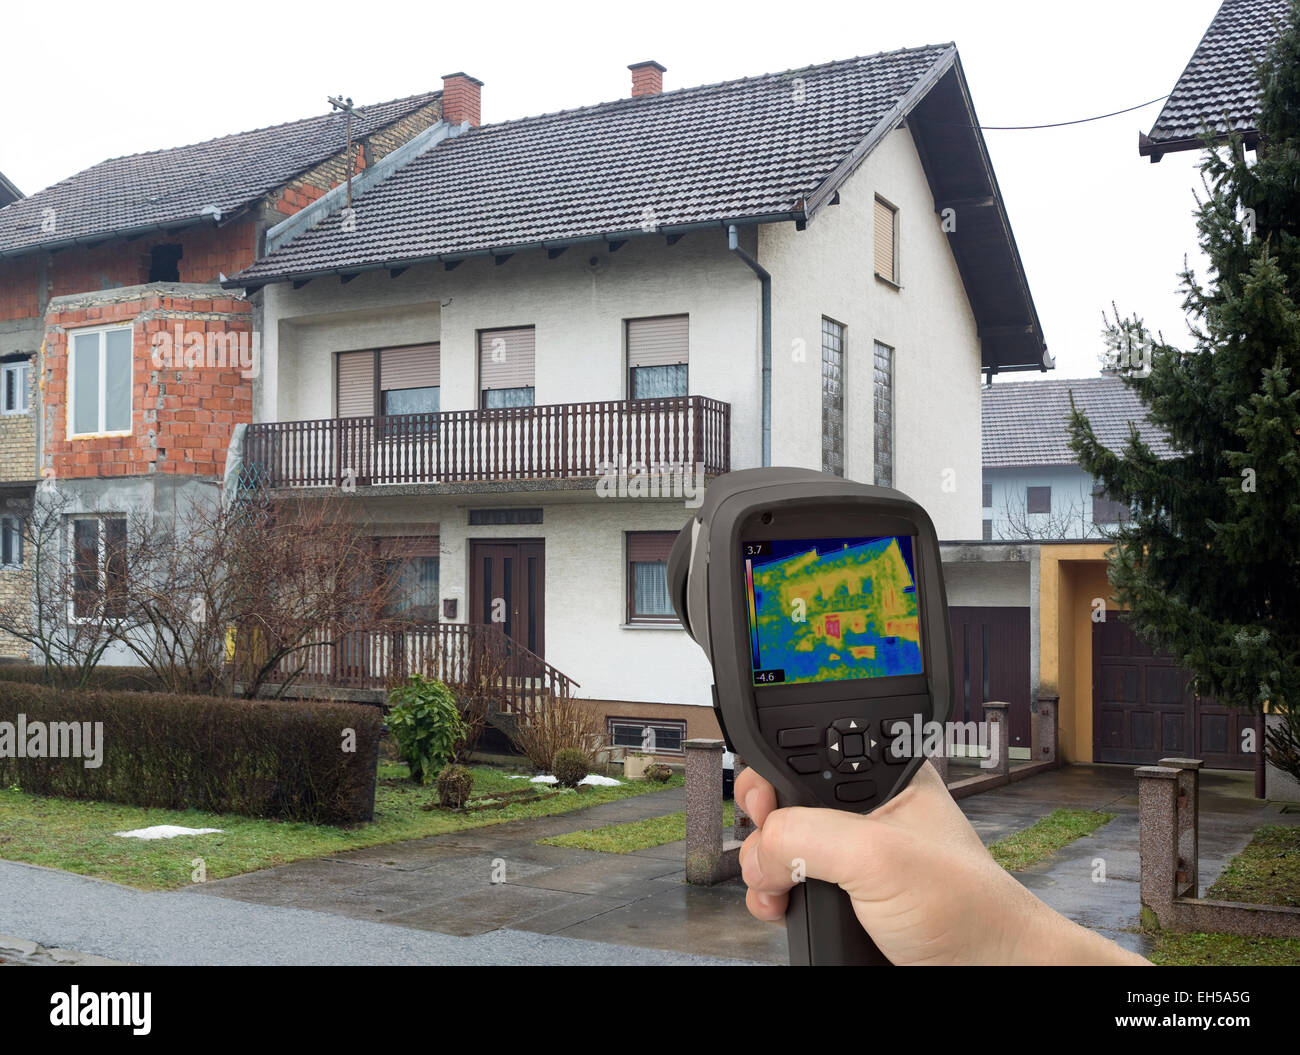 Object Detection Stock Photos & Object Detection Stock Images - Page